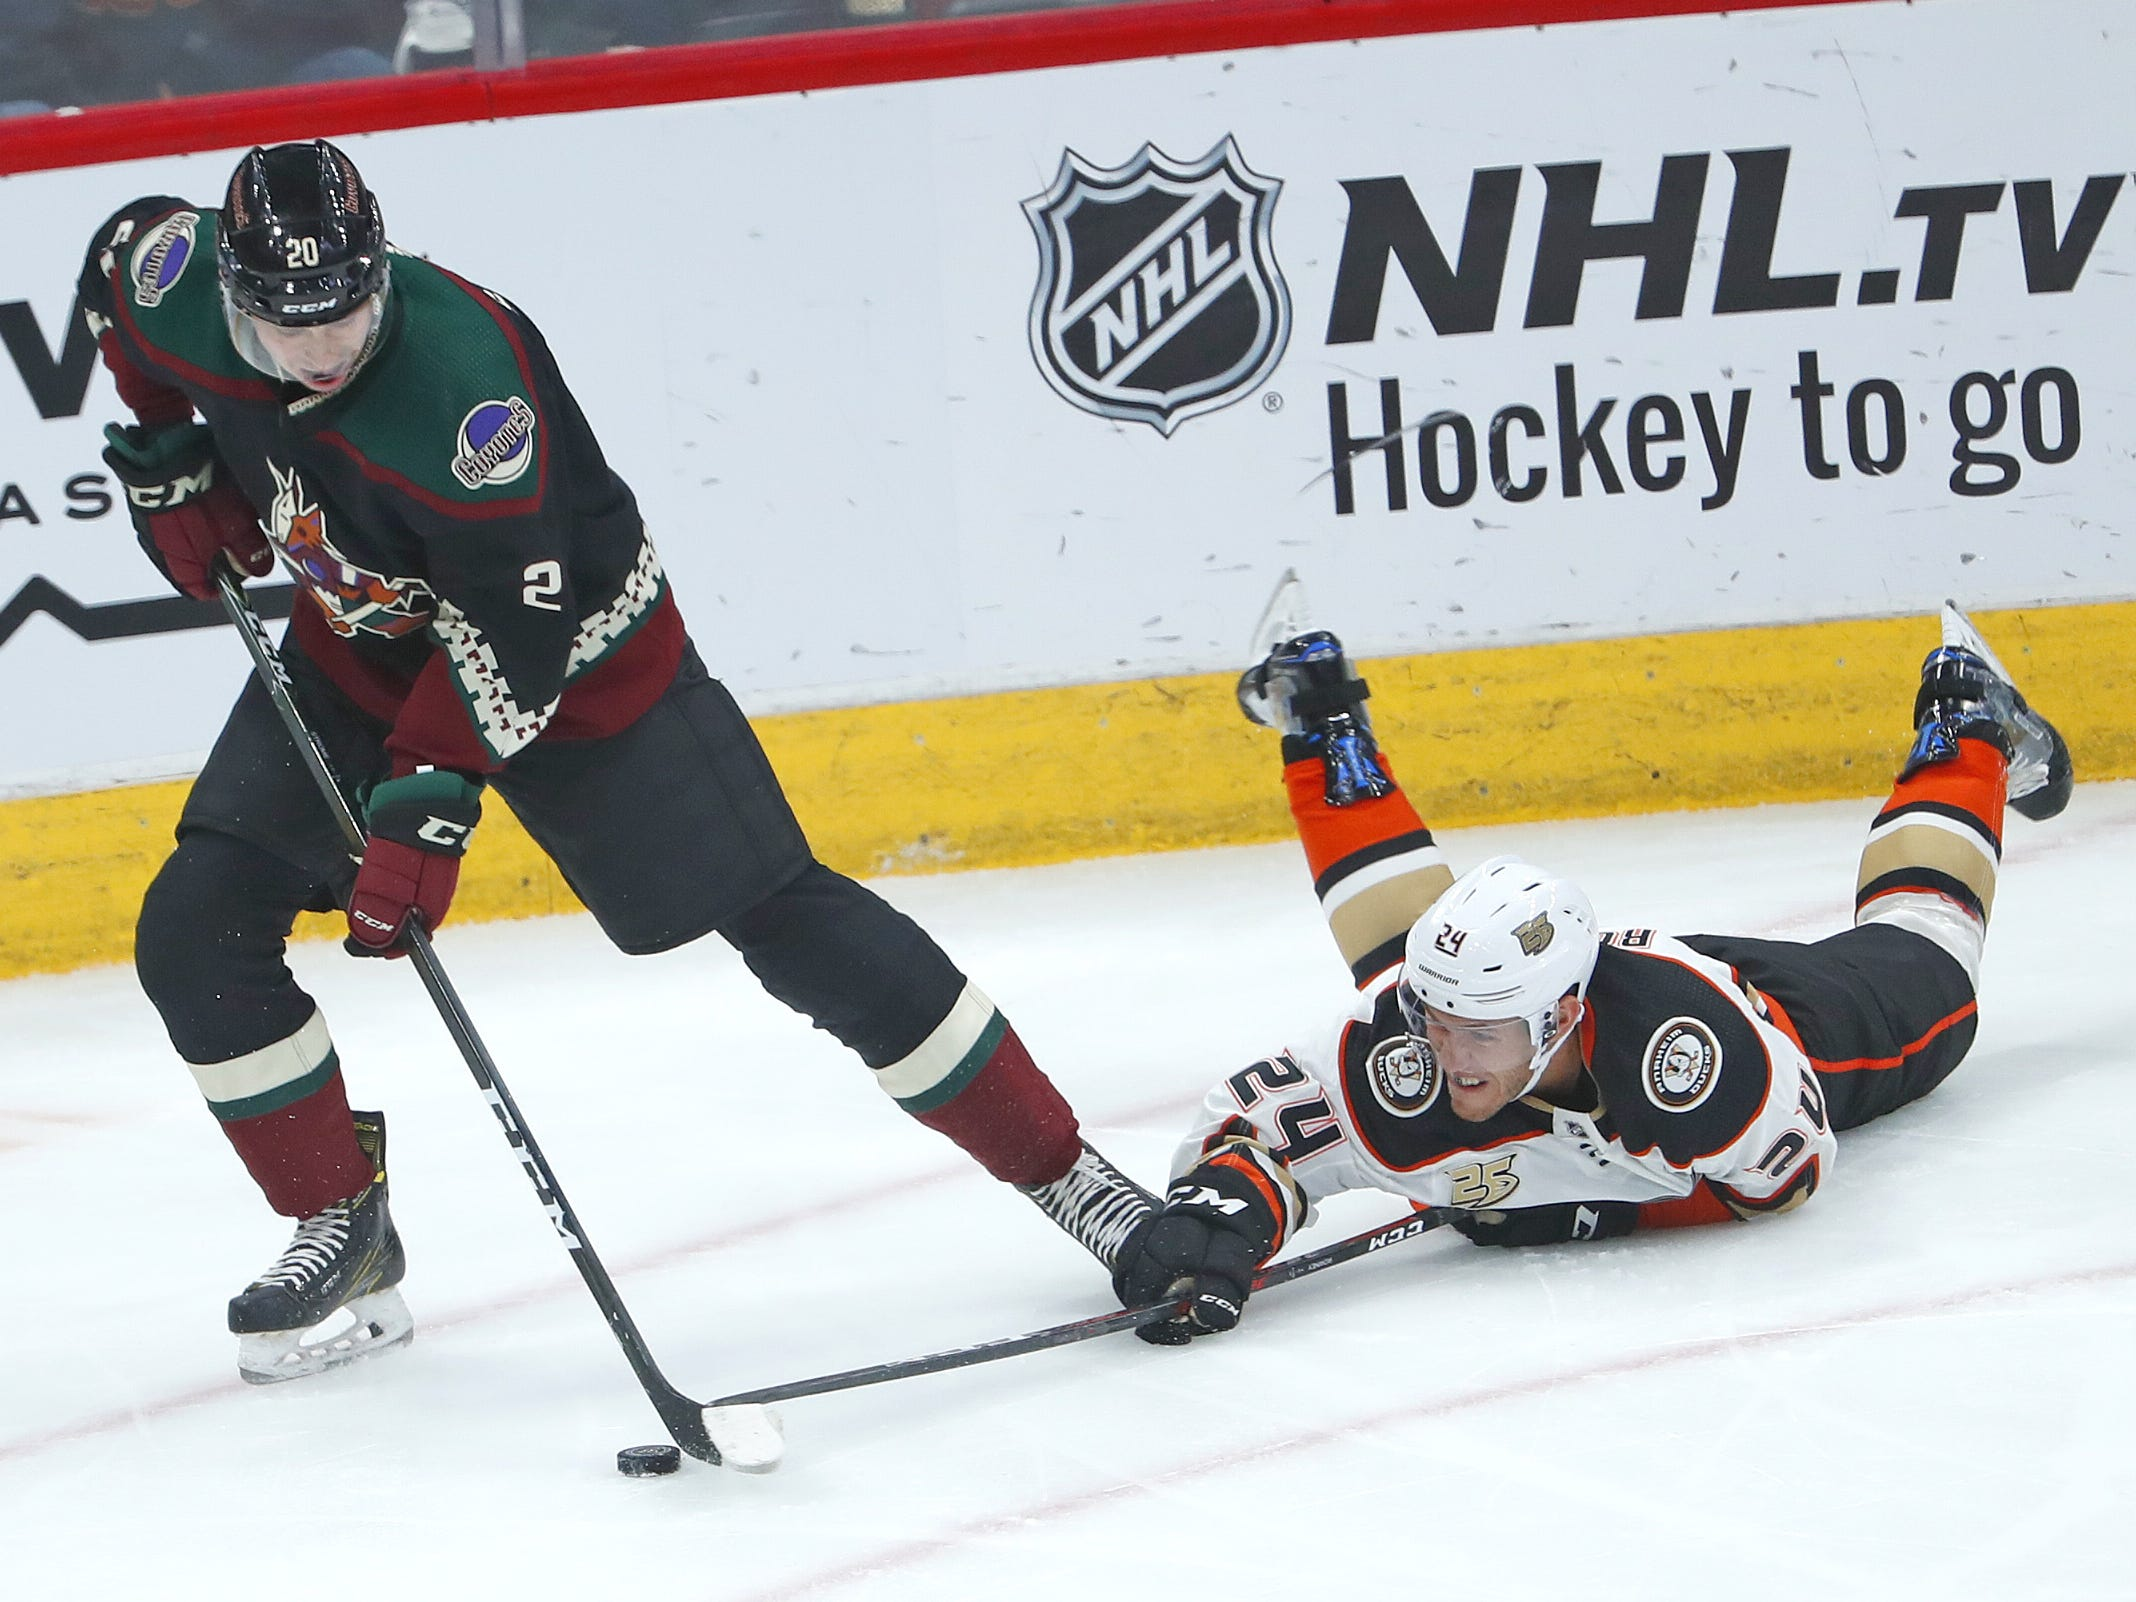 Ducks Carter Rowney (24) tries to steal a puck while laying on the ice against Coyotes Dylan Strome (20) during the first period at Gila River Arena in Glendale, Ariz. on October 6, 2018.